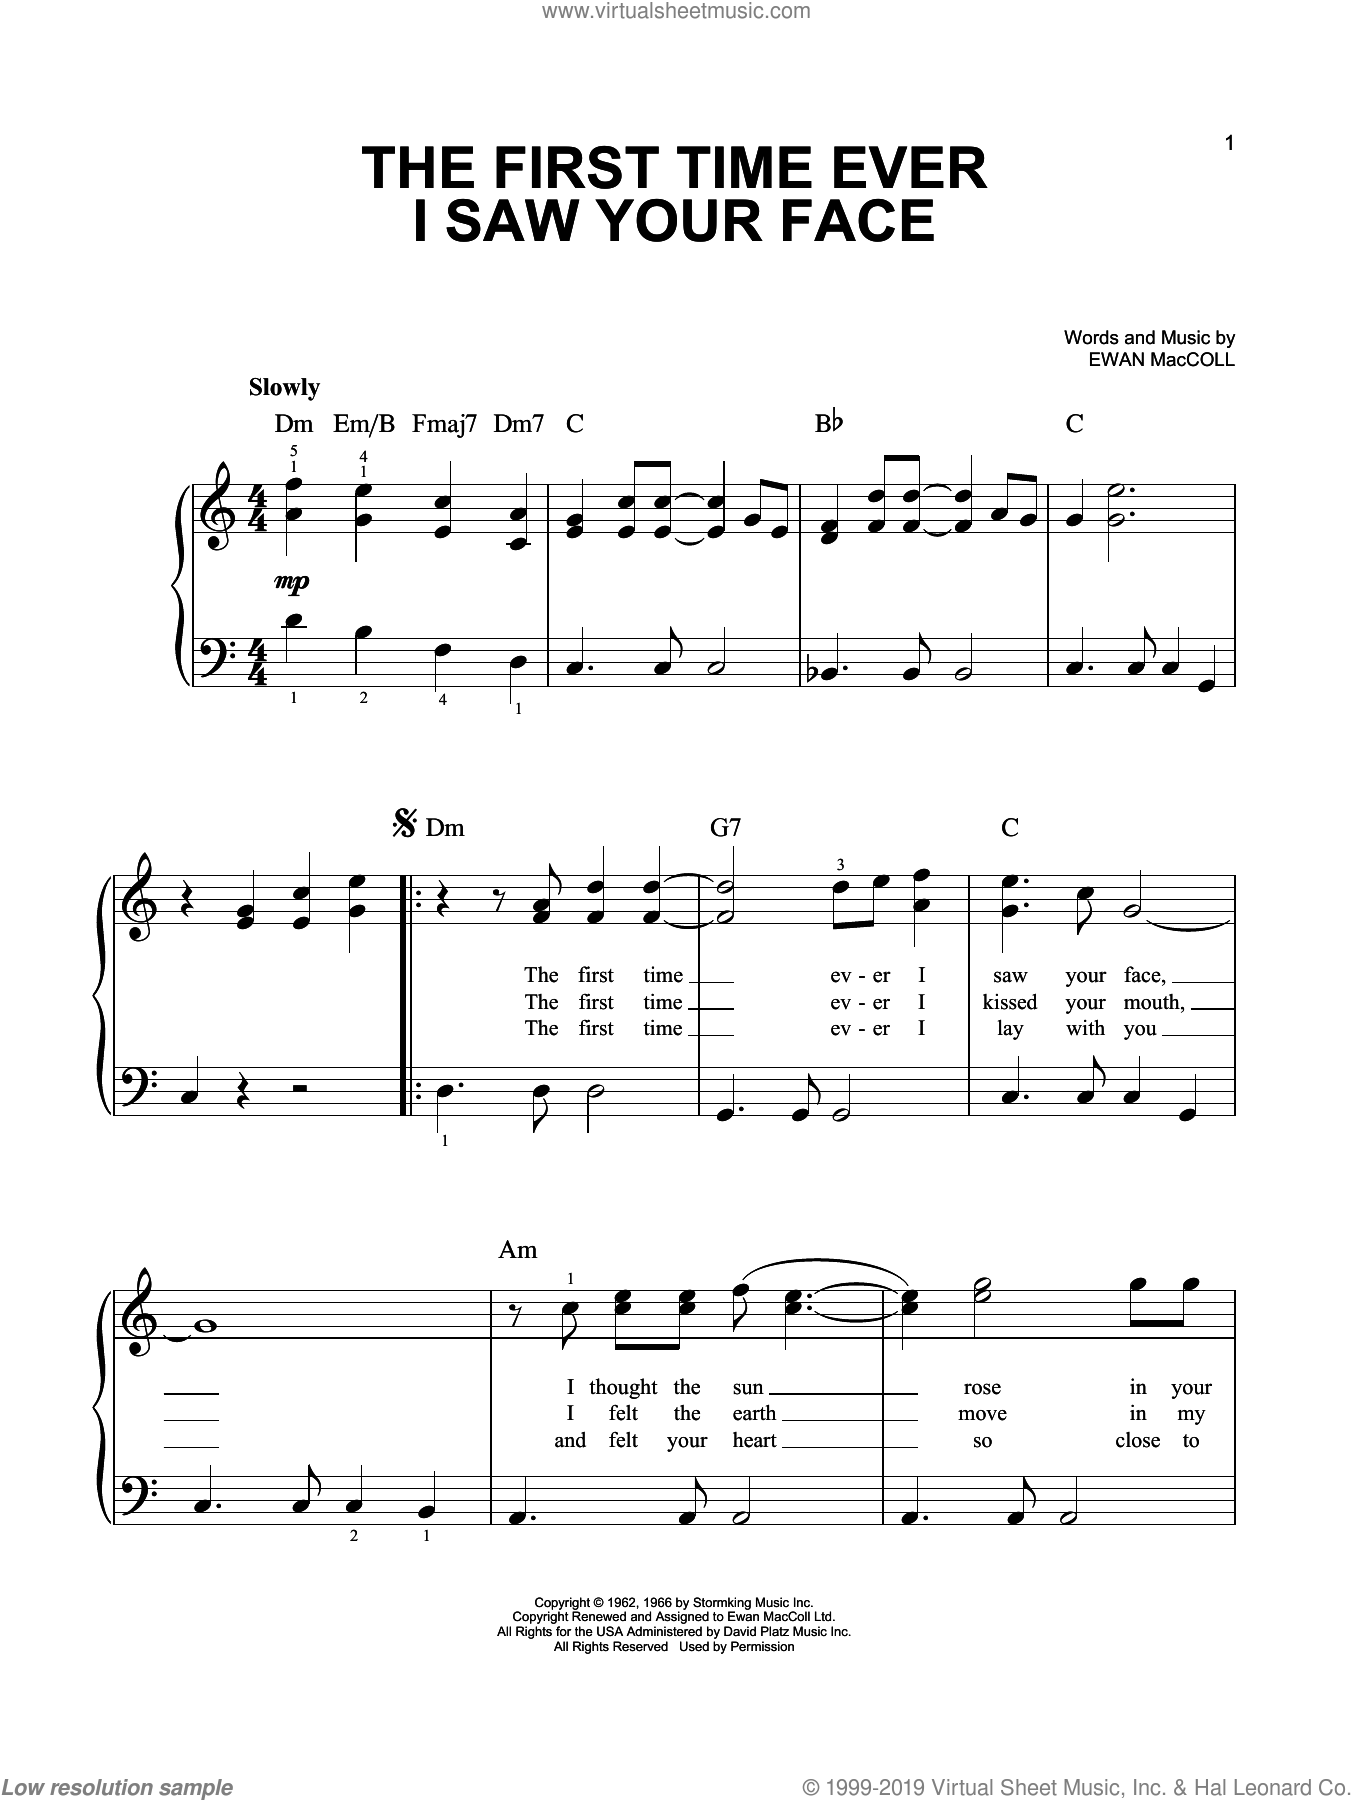 The First Time Ever I Saw Your Face sheet music for piano solo by Roberta Flack, Johnny Cash and Ewan MacColl, wedding score, easy skill level